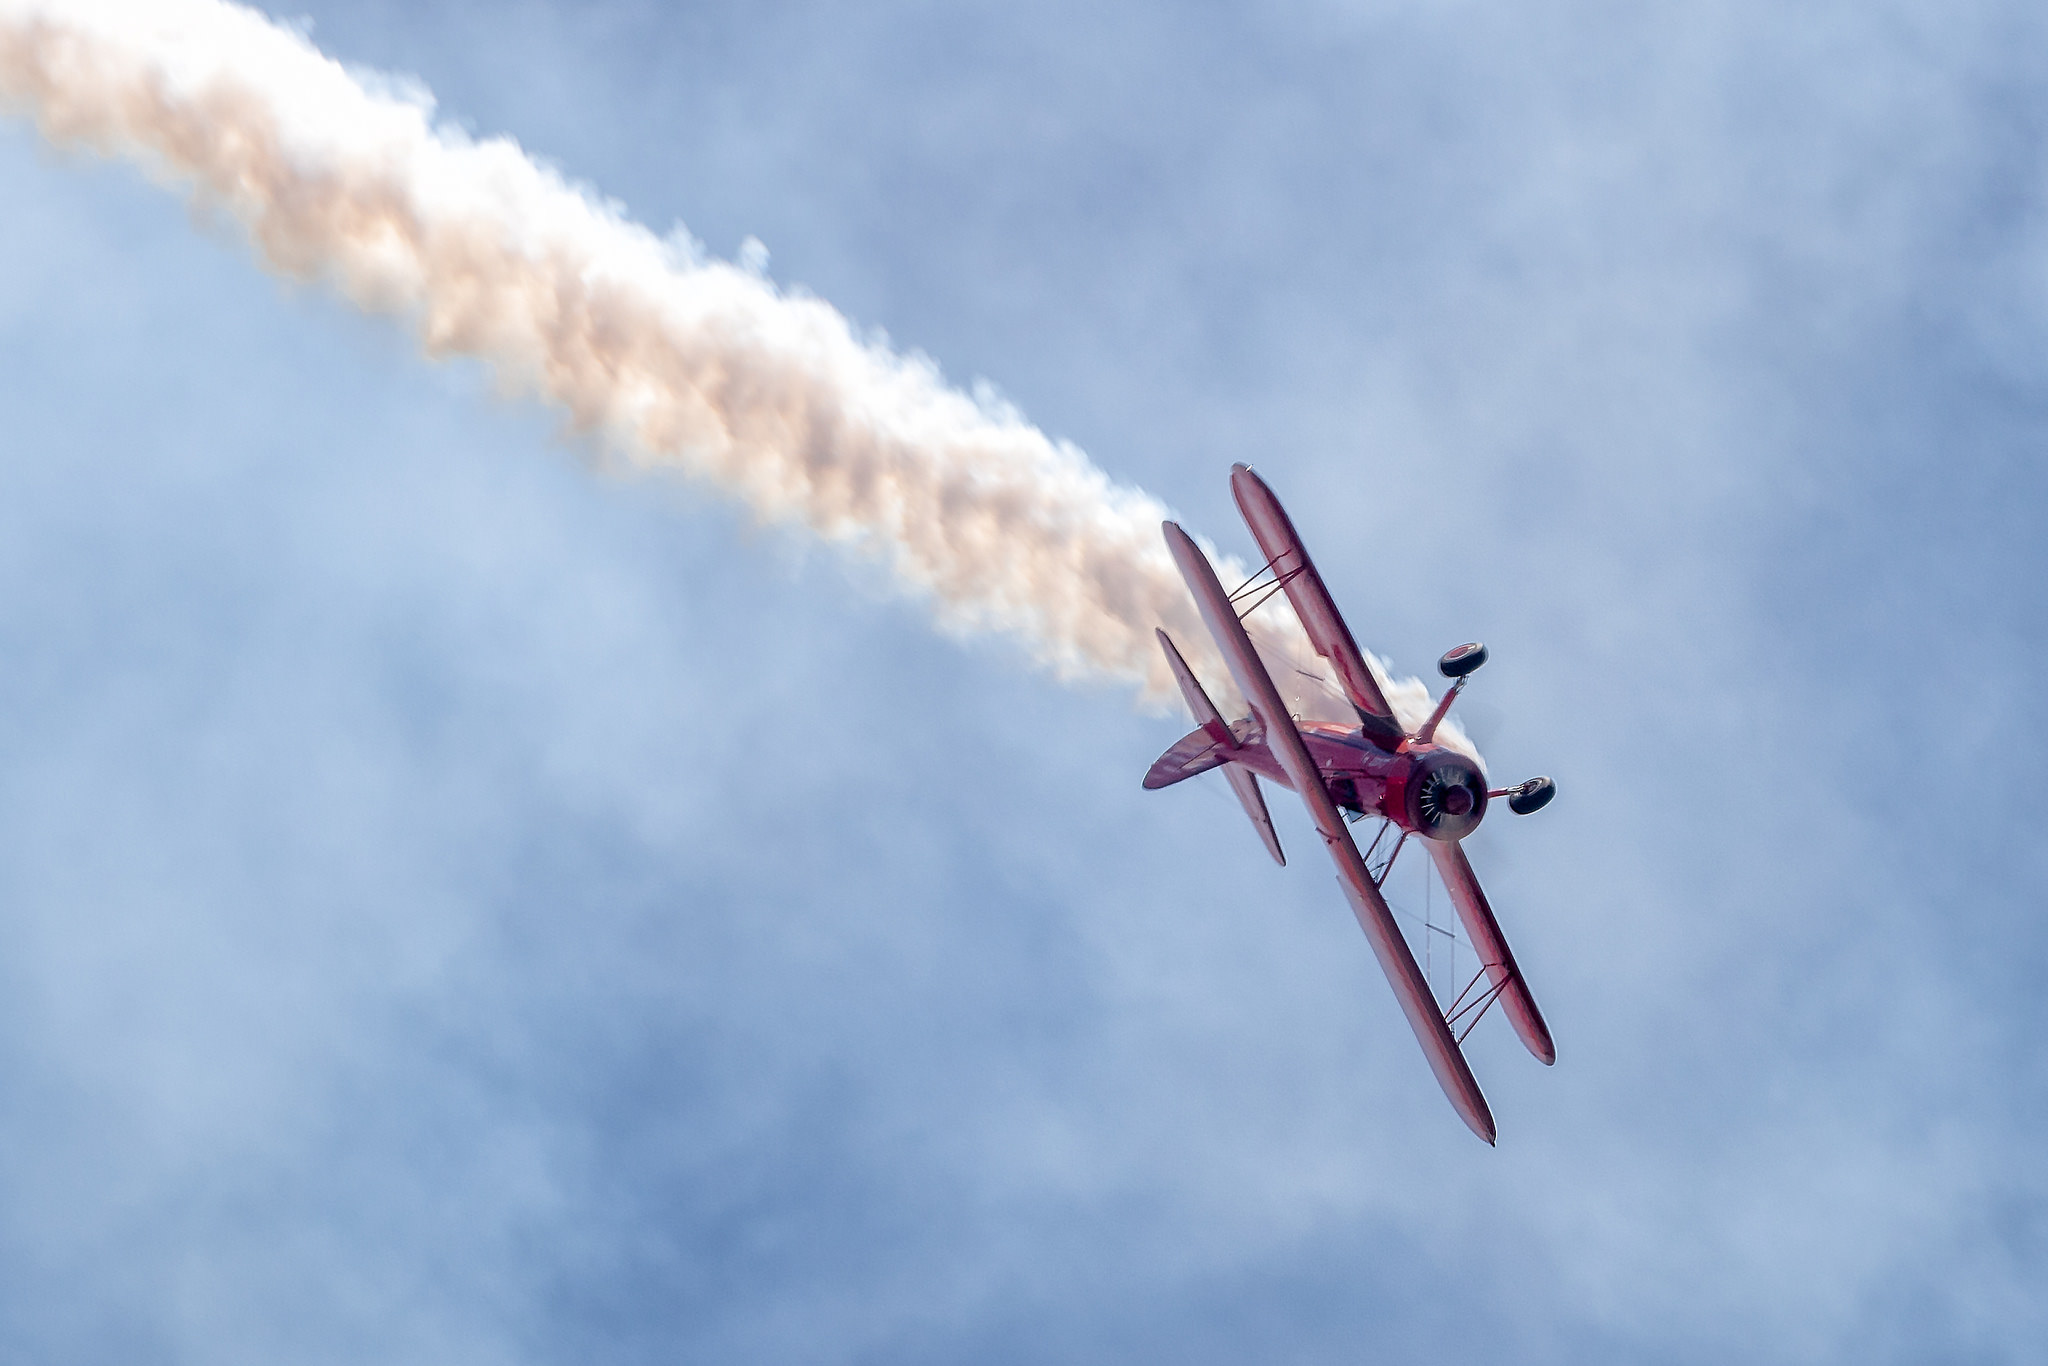 Dizzying biplane aerobatics courtesy of pilot Vicky Benzing and California Aeronautical  University